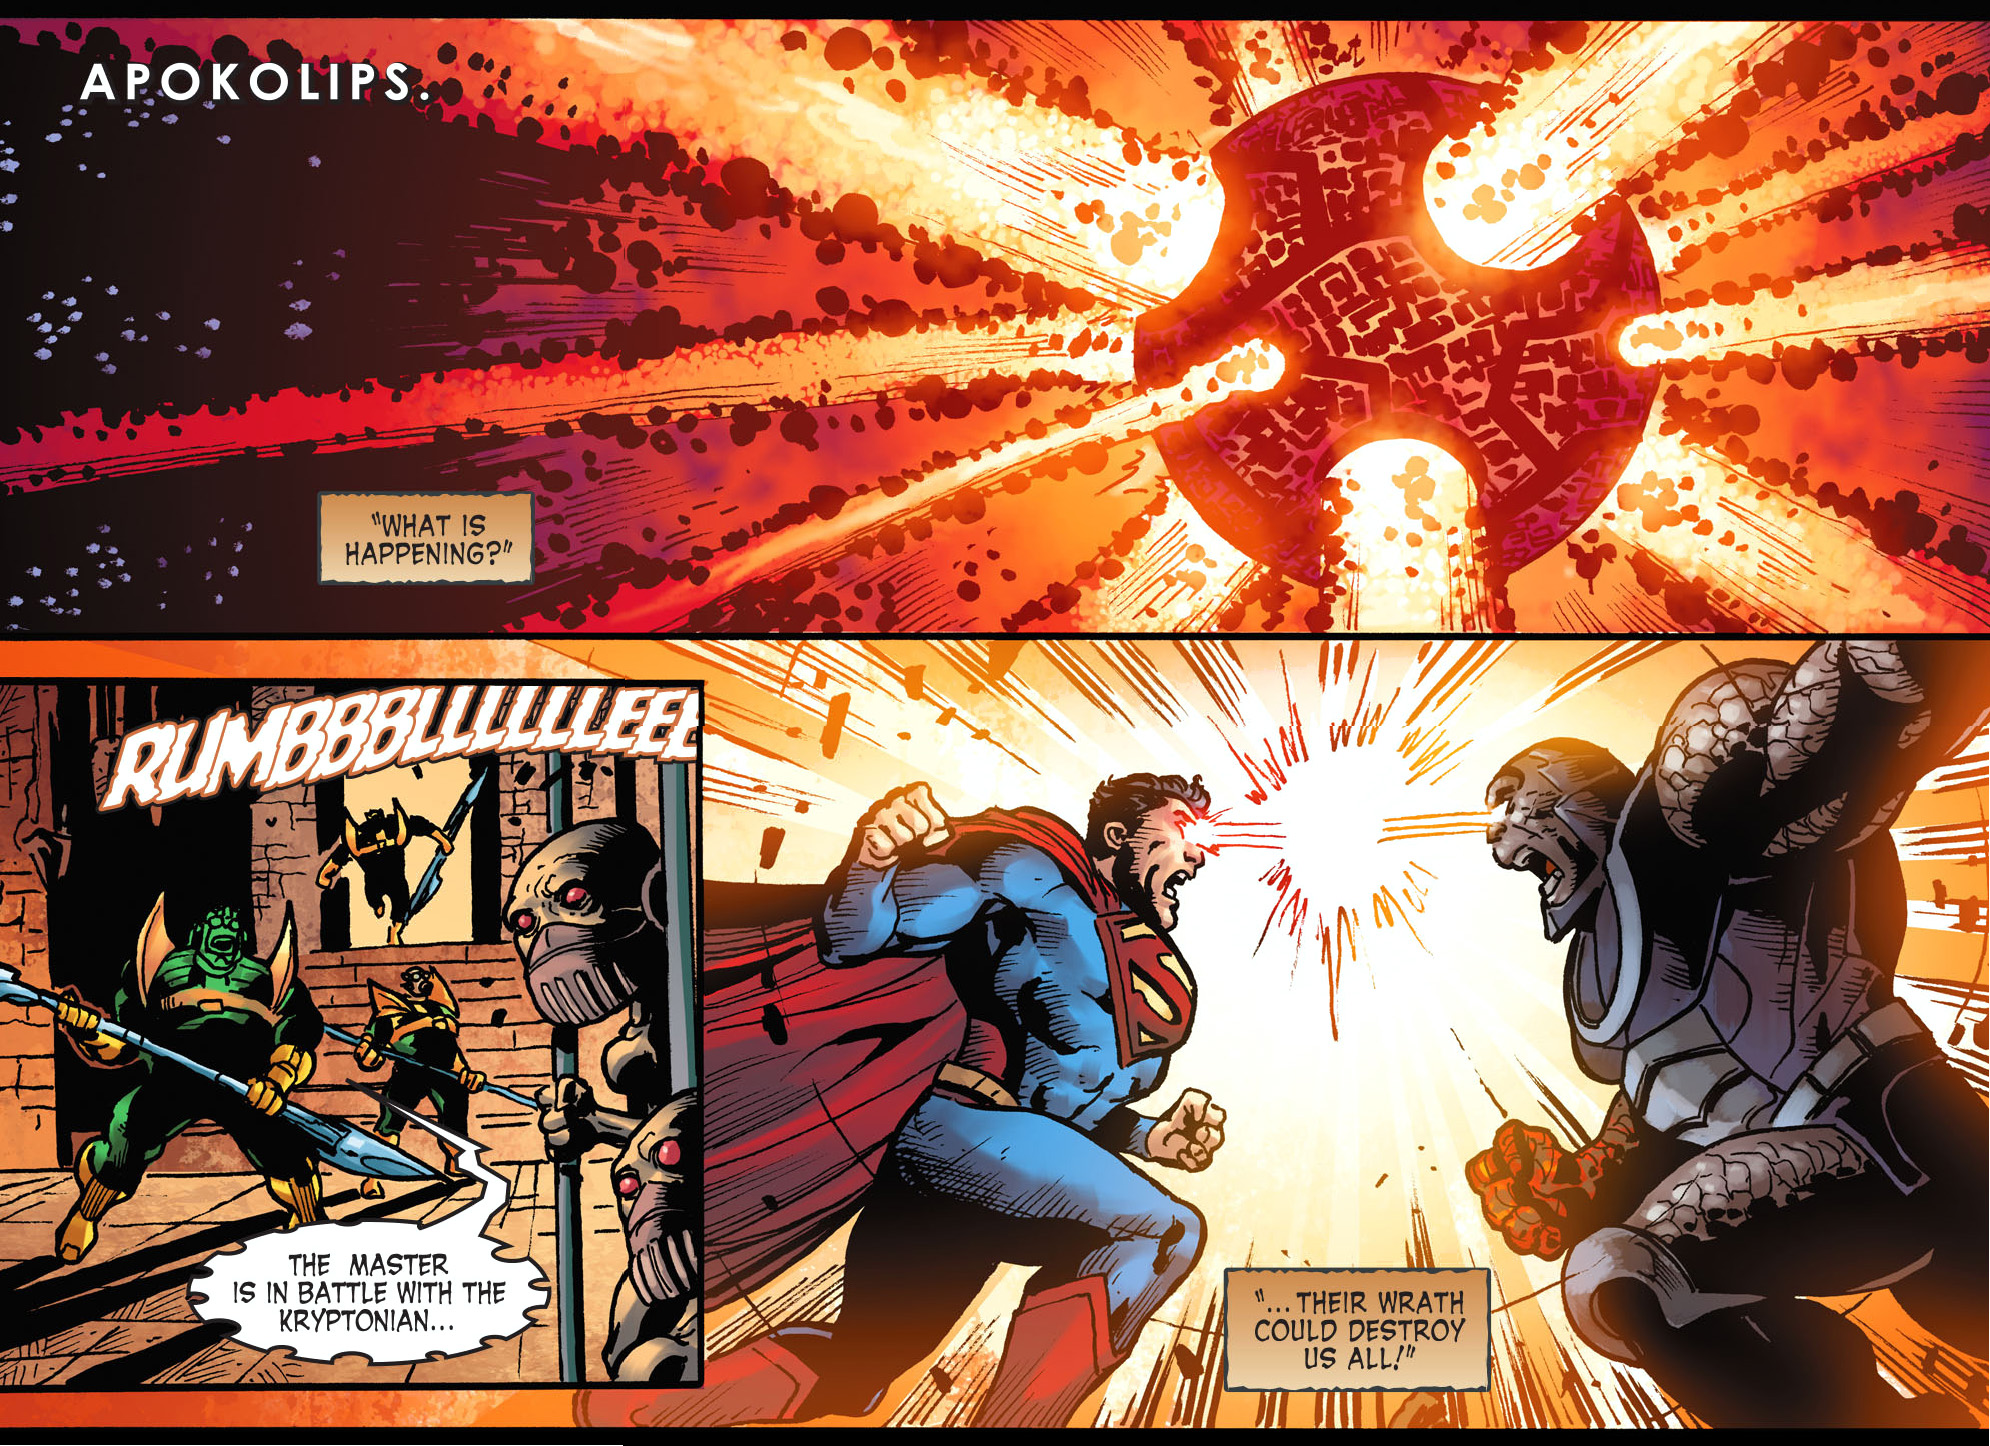 superman vs darkseid (injustice gods among us)